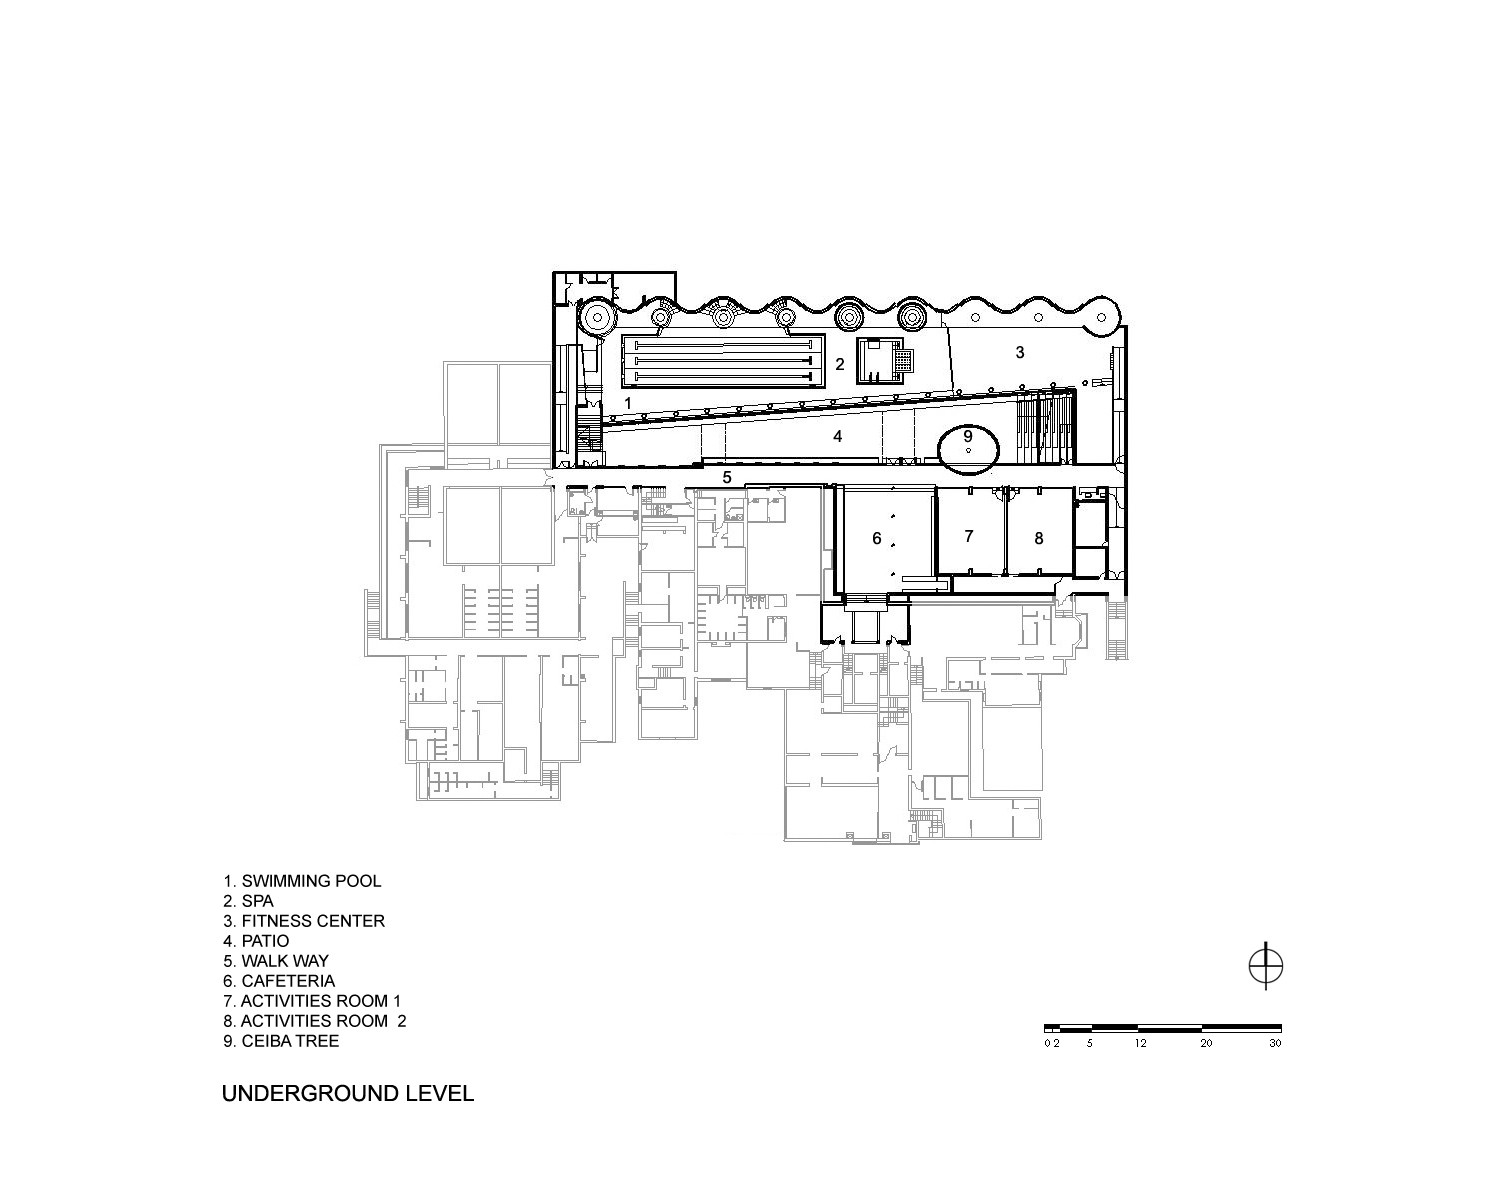 Gallery Of Pwcc Spa Fitness Center Plan